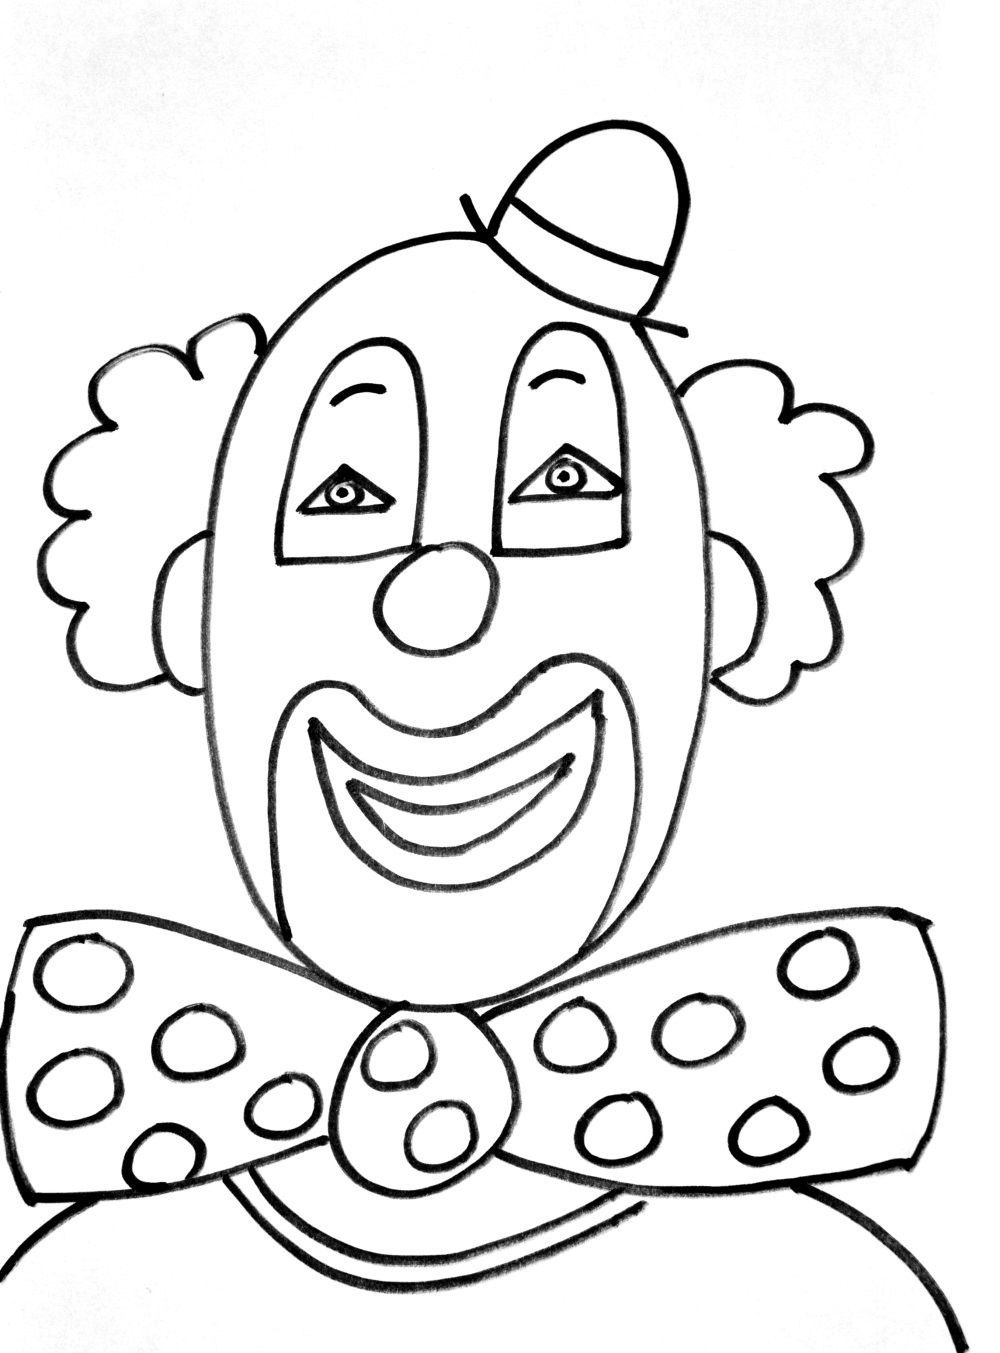 25++ Clown coloring pages for preschoolers information